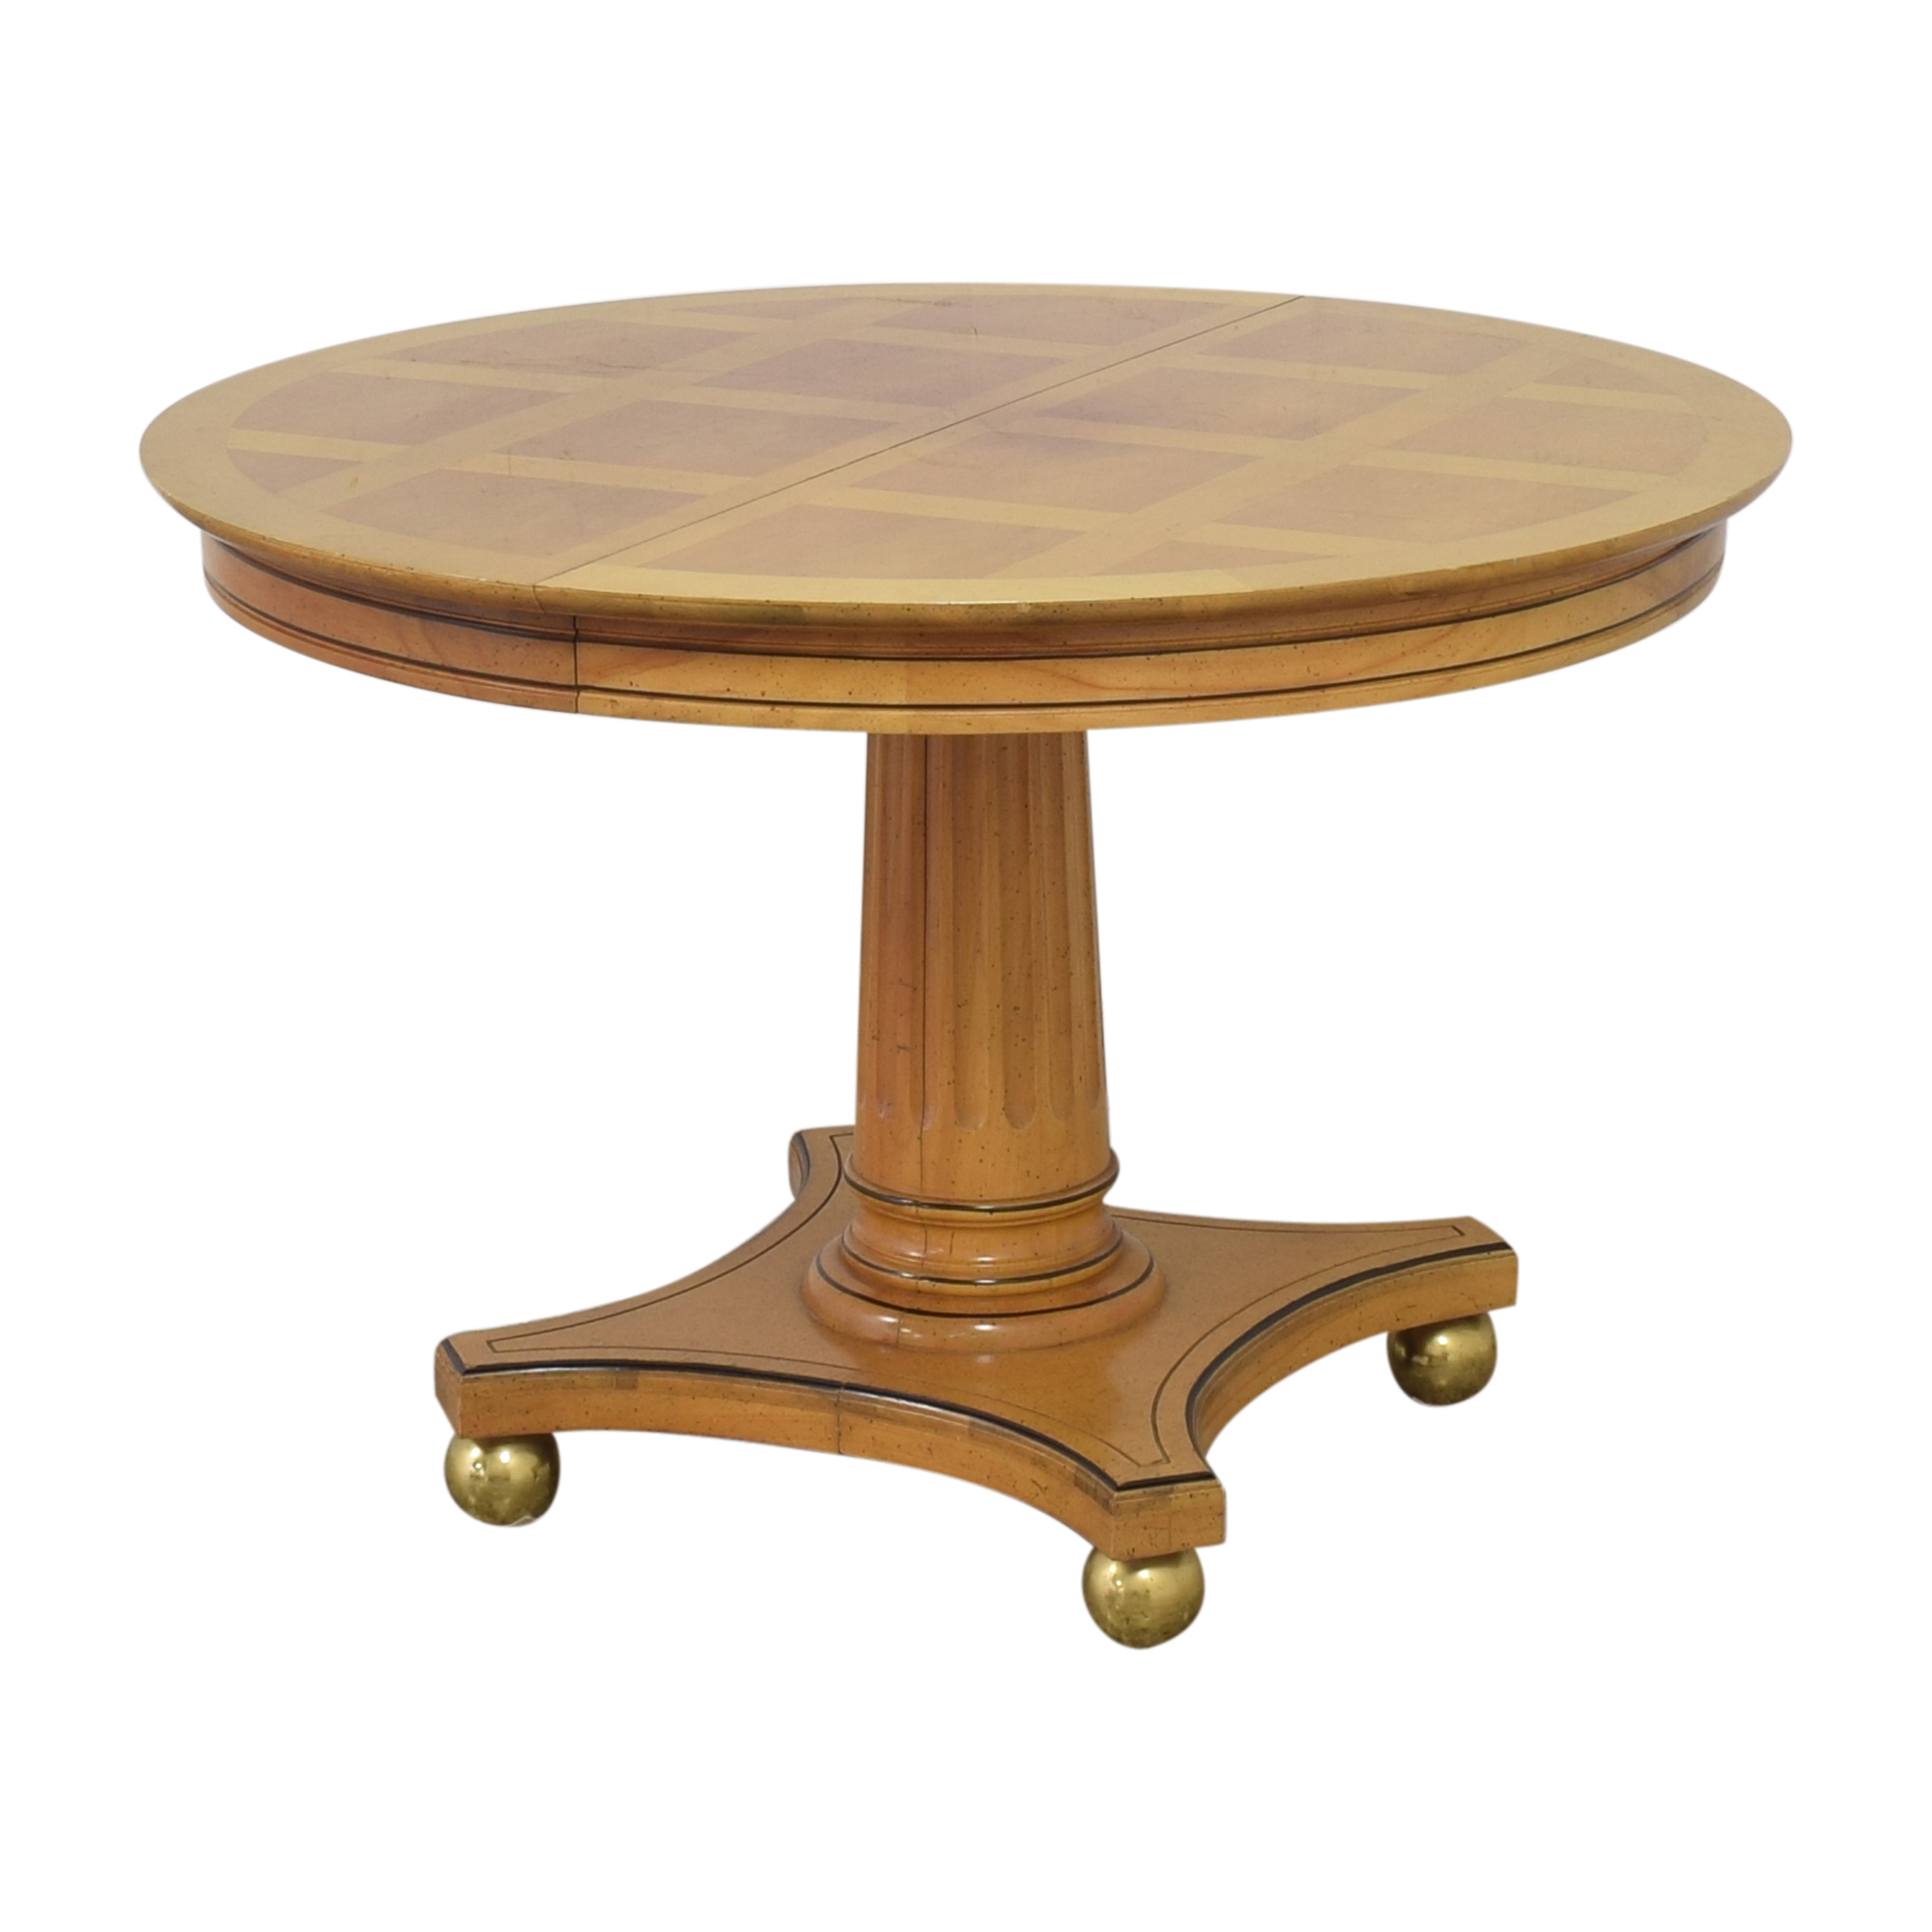 Jefferson Wood Working Jefferson Wood Working Extendable Round Dining Table on sale